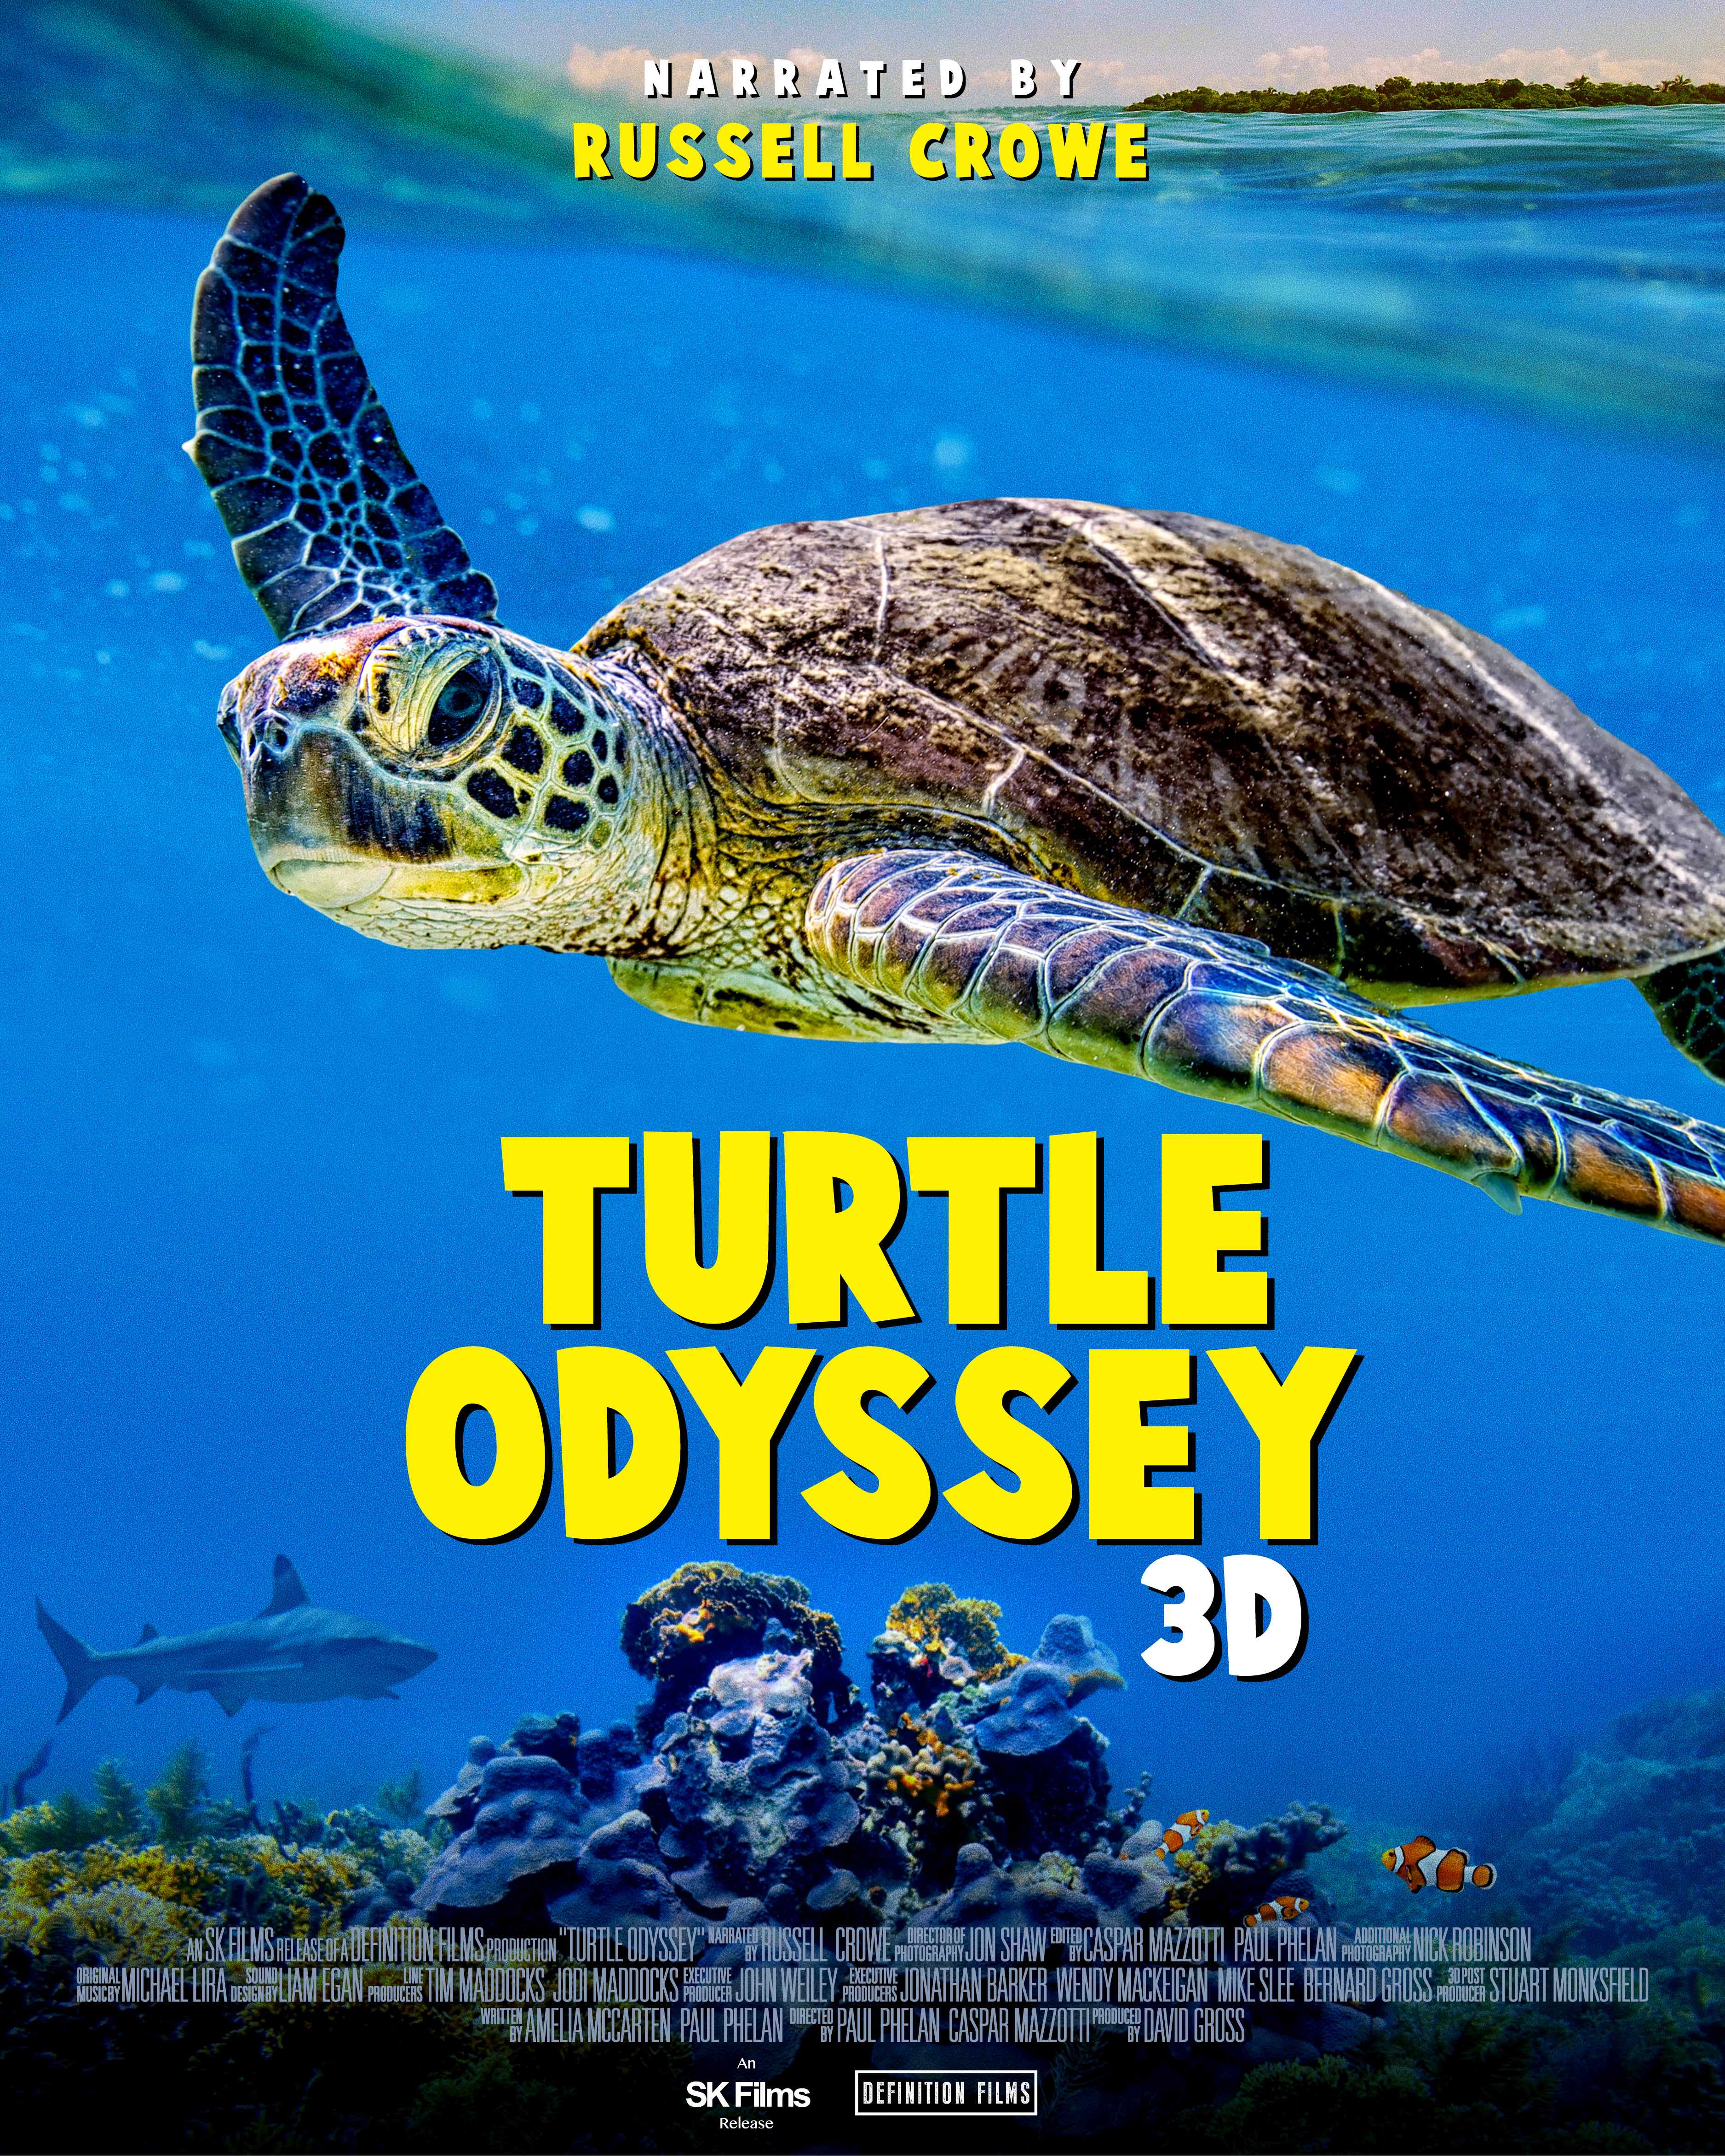 Turtle Odyssey | About the Film